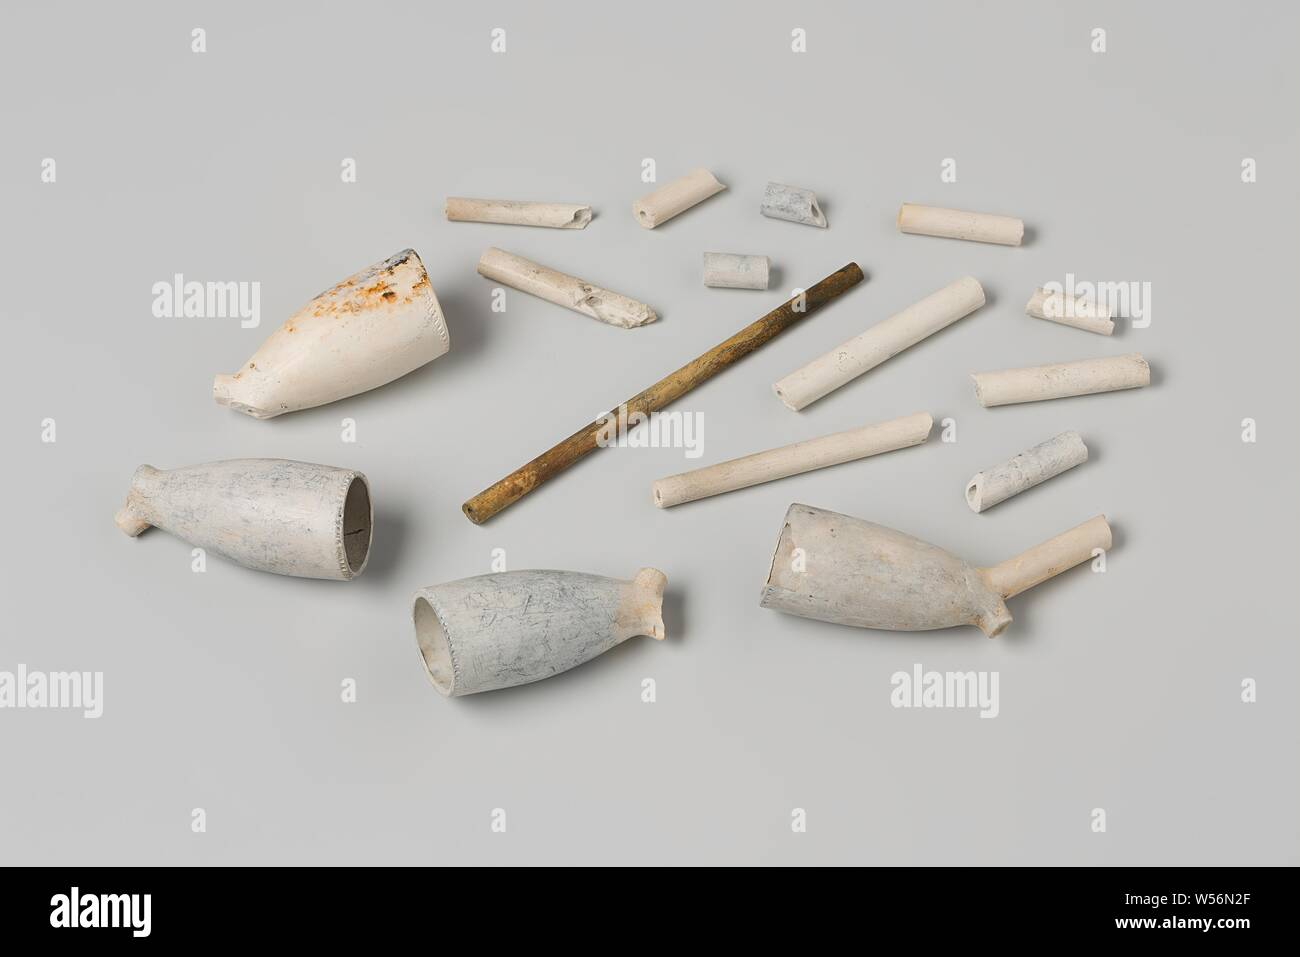 Fragments of pipe heads and pipe stalks from the wreck of the East Indies sailor 't Vliegend Hart, Four heads of earthen Gouda pipes: three heel-crowned WS (one of which with a piece of stem) that is blue-white color. And one head with heel mark crowned 67 that has turned yellowish. Twelve pieces of steel, Dutch East India Company, 't Vliegend Hart (ship), WS, Gouda, 1728 - 2-Mar-1735, pipe clay, l 7 cm × w 2.1 cm × d 3 cm × l 1.7 cm × d 0.5 cm Stock Photo